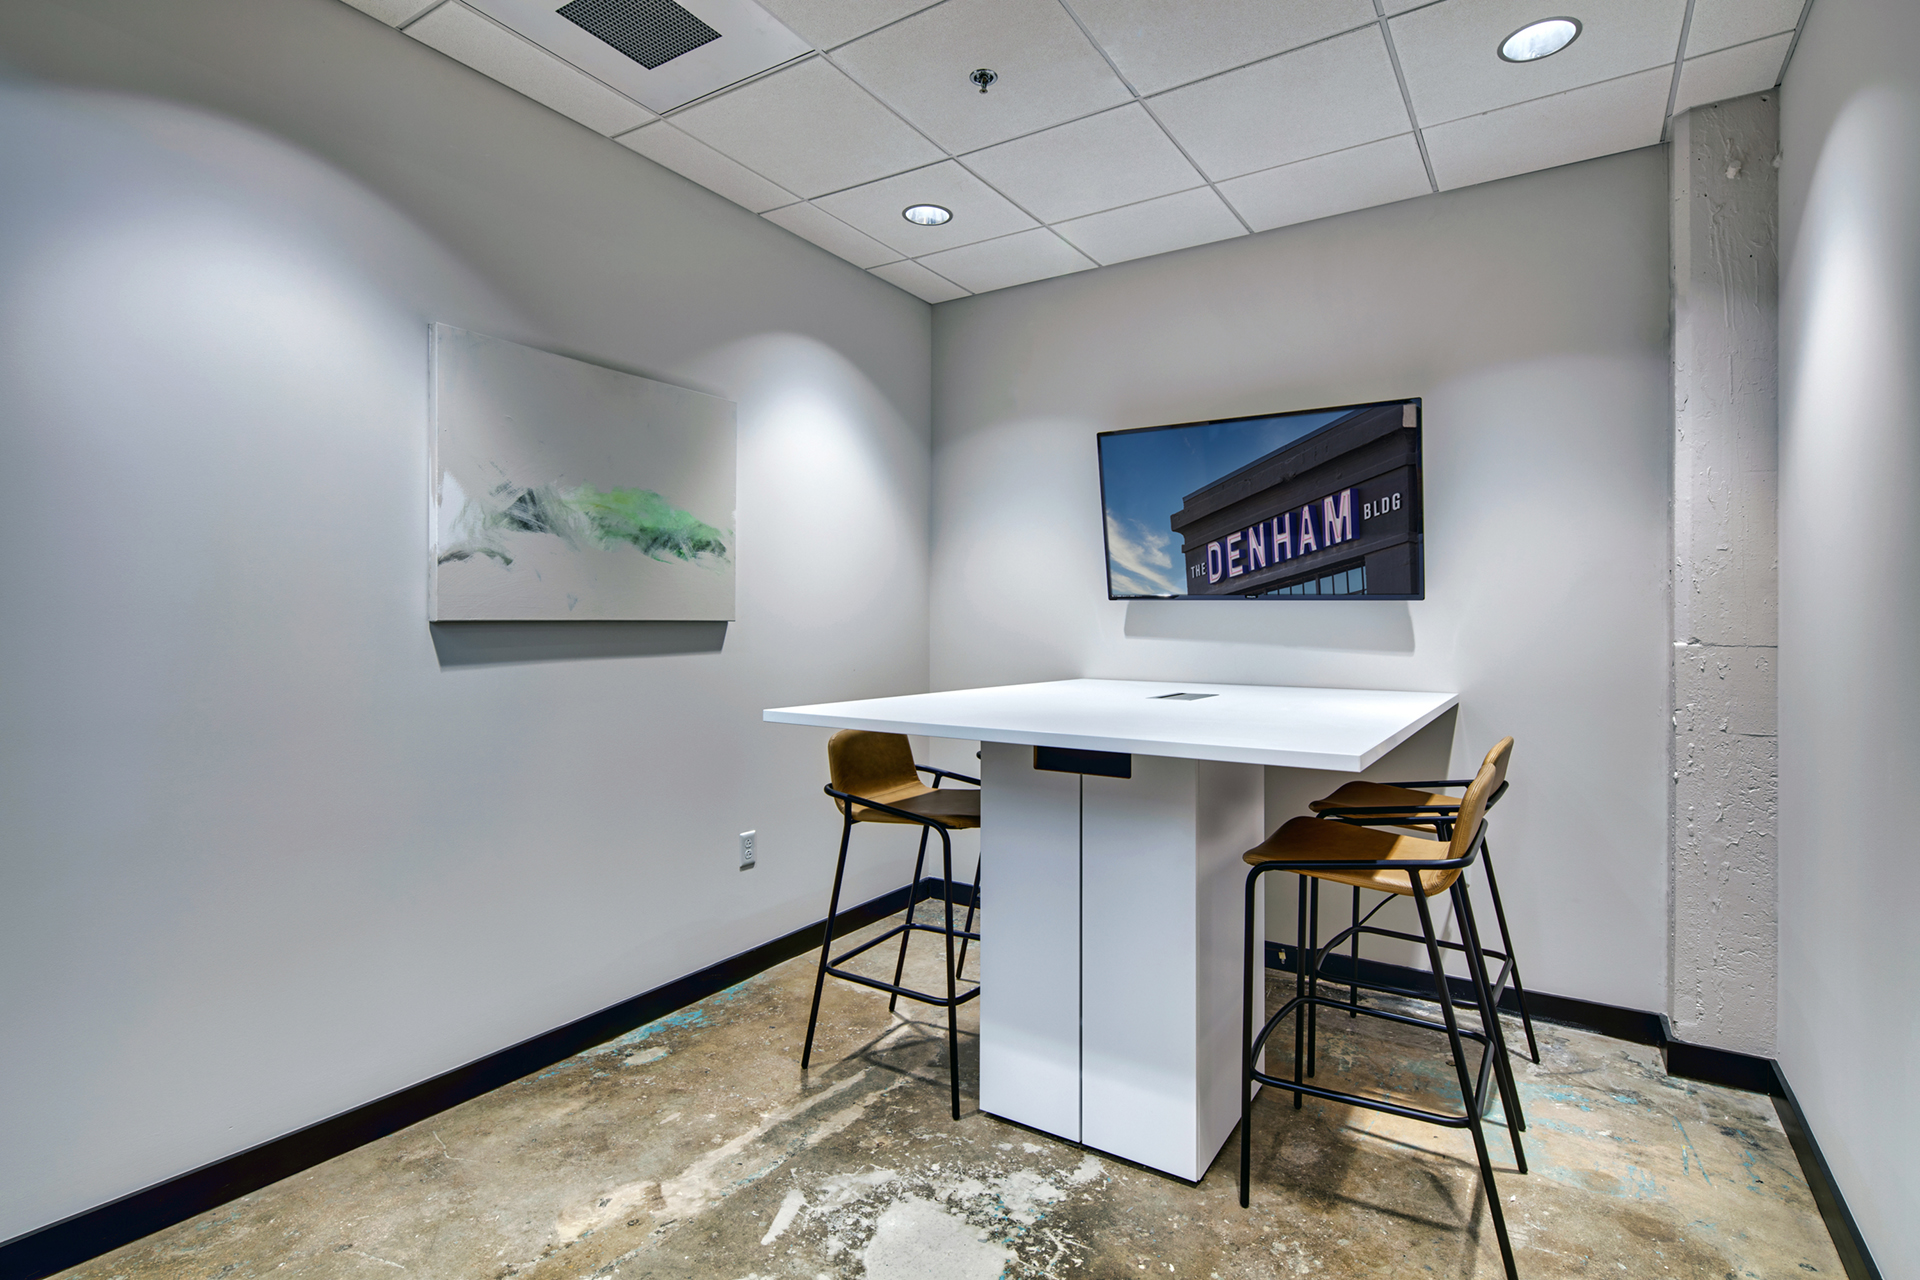 Office space with seating area for working professionals at The Denham Building in South Birmingham, AL